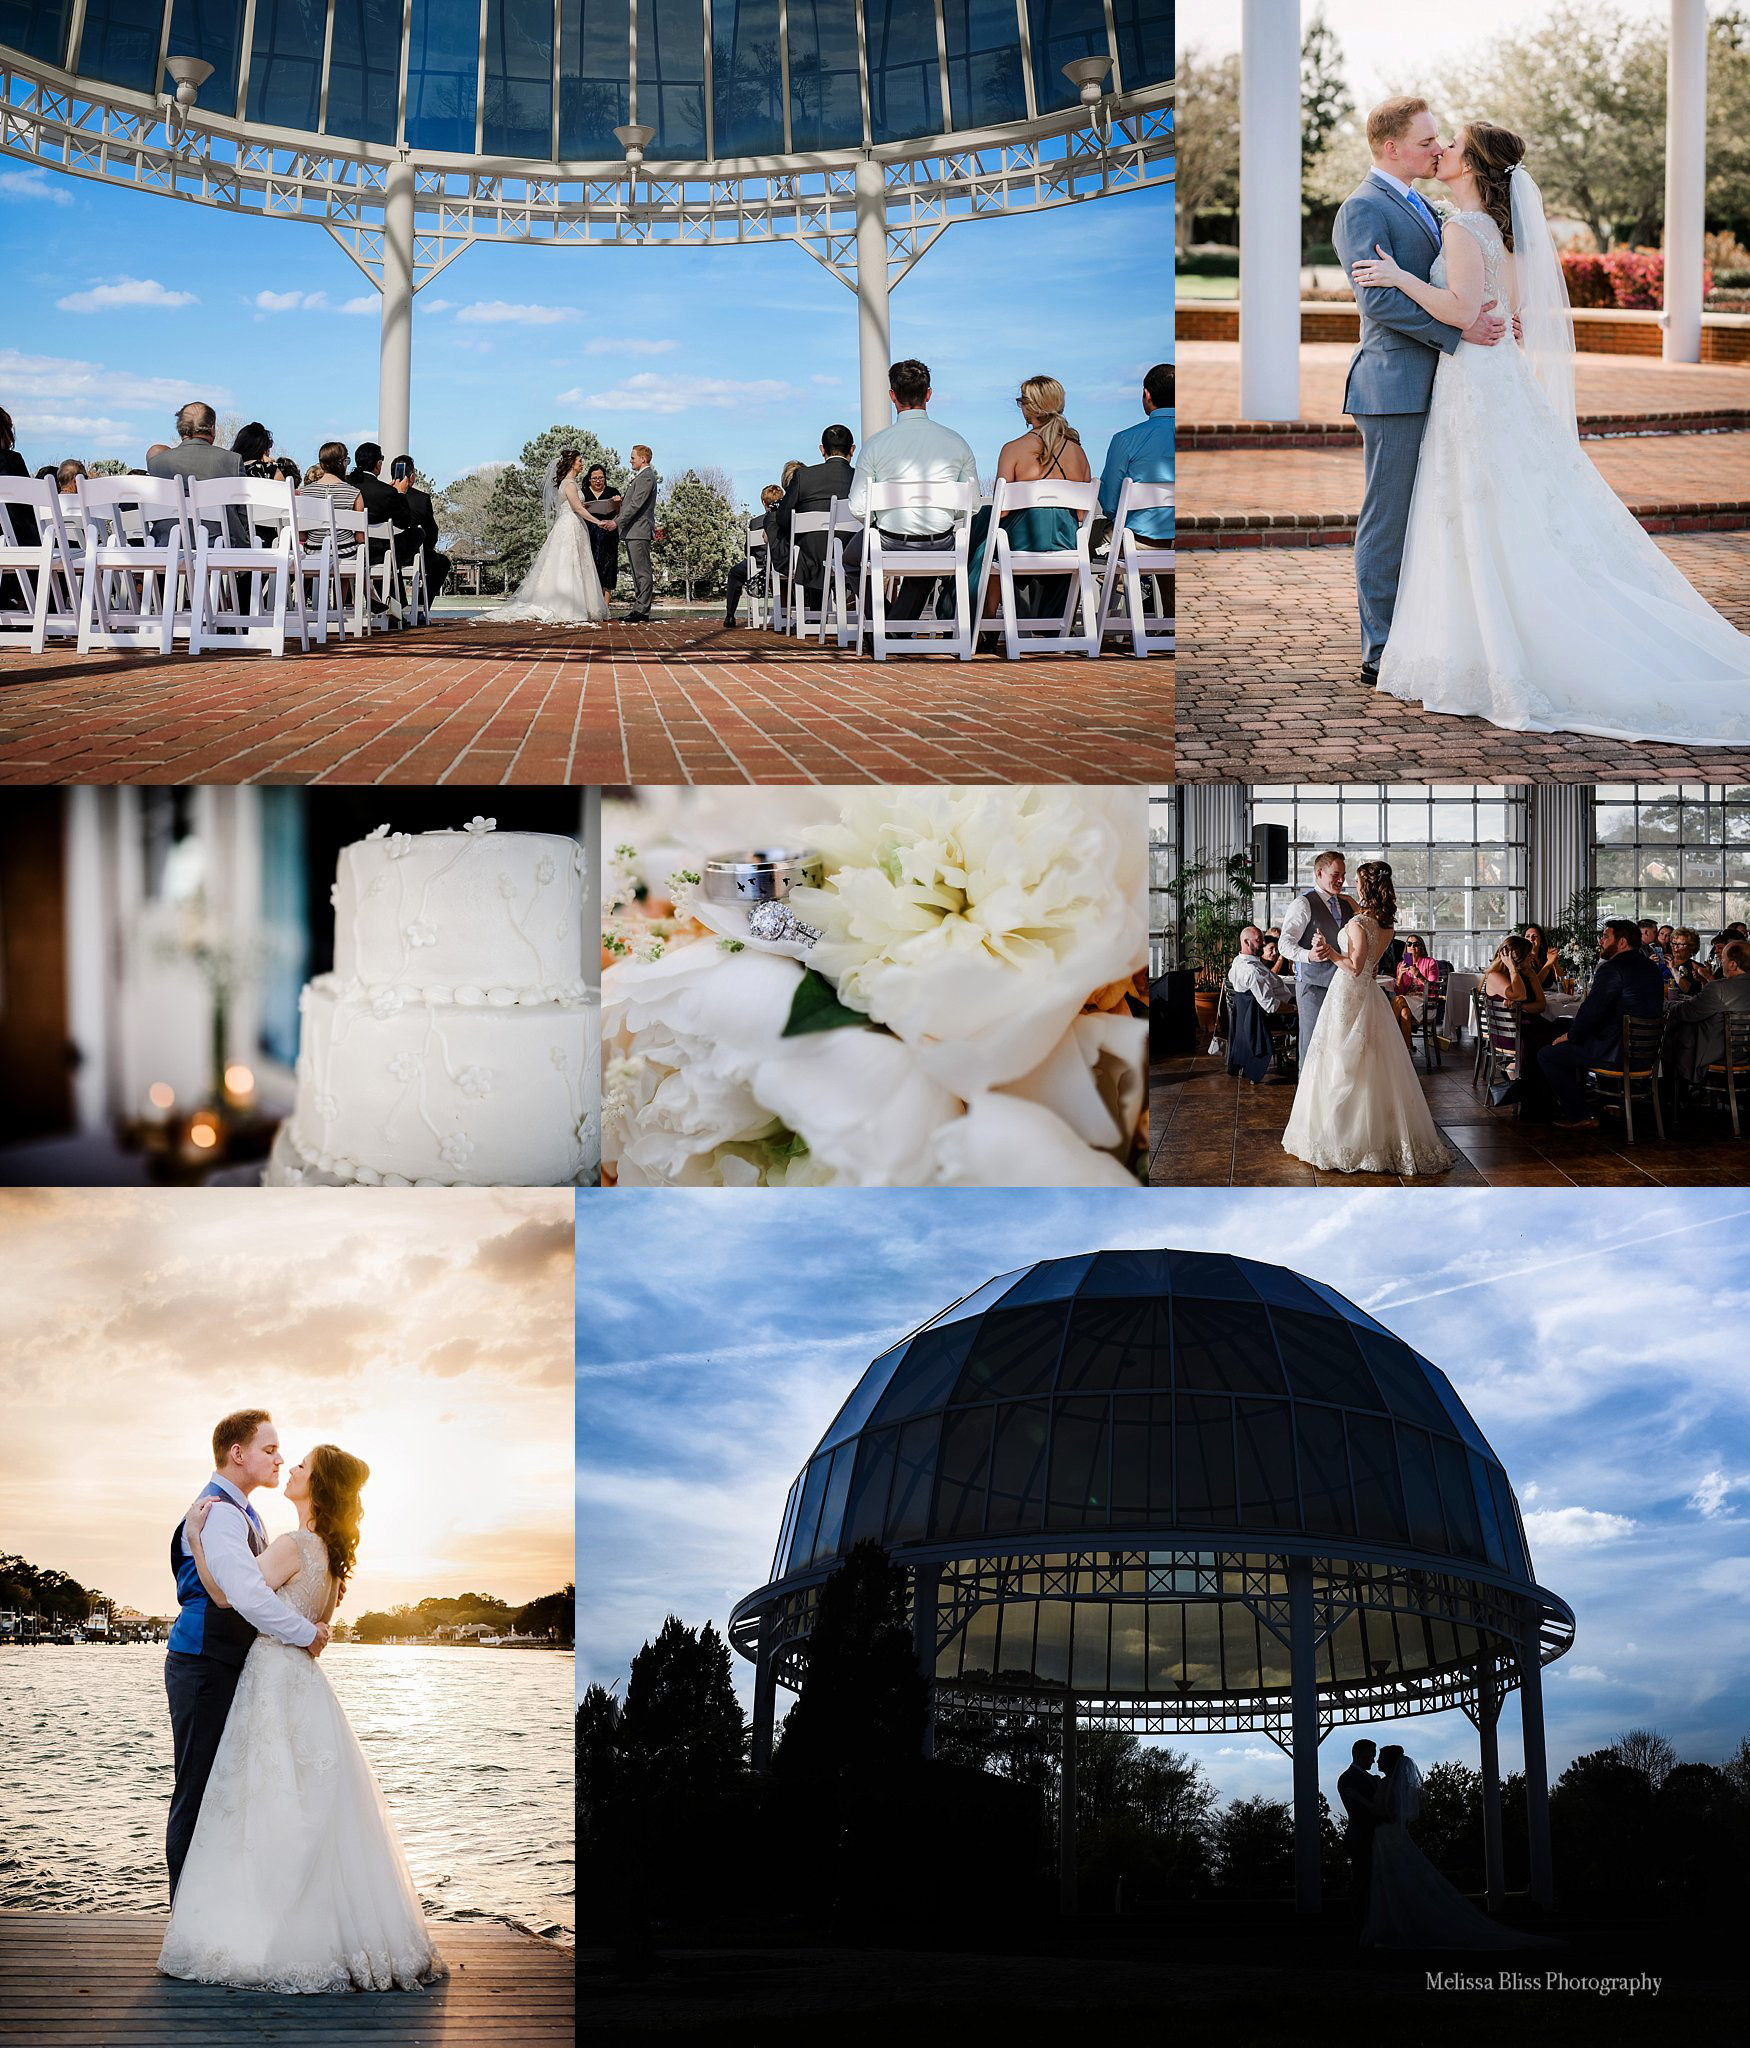 Virginia-Beach-Wedding-Indian-River-Dome-One-Fish-Two-Fish-Melissa-Bliss-Photography.jpg